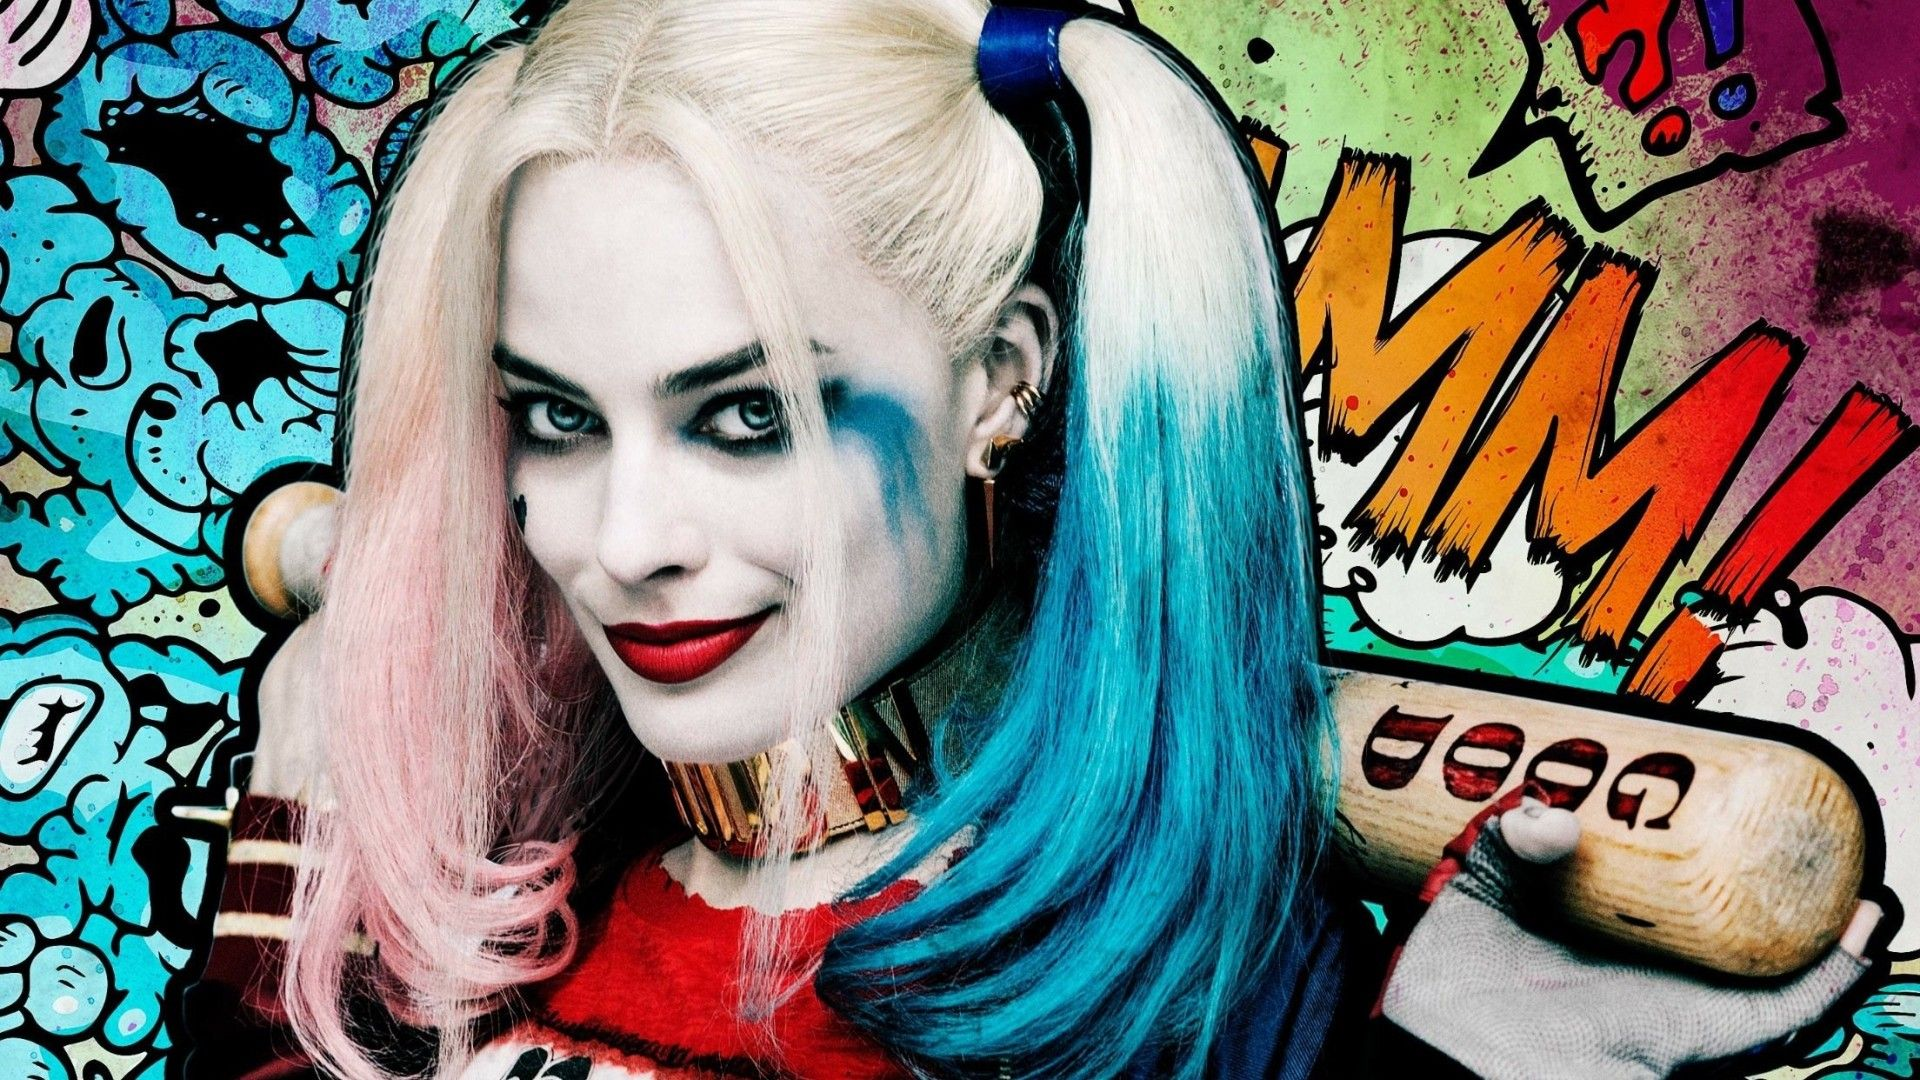 Harley Quinn Hd Wallpapers Suicide Squad Tab Toris Gaming Desk Top